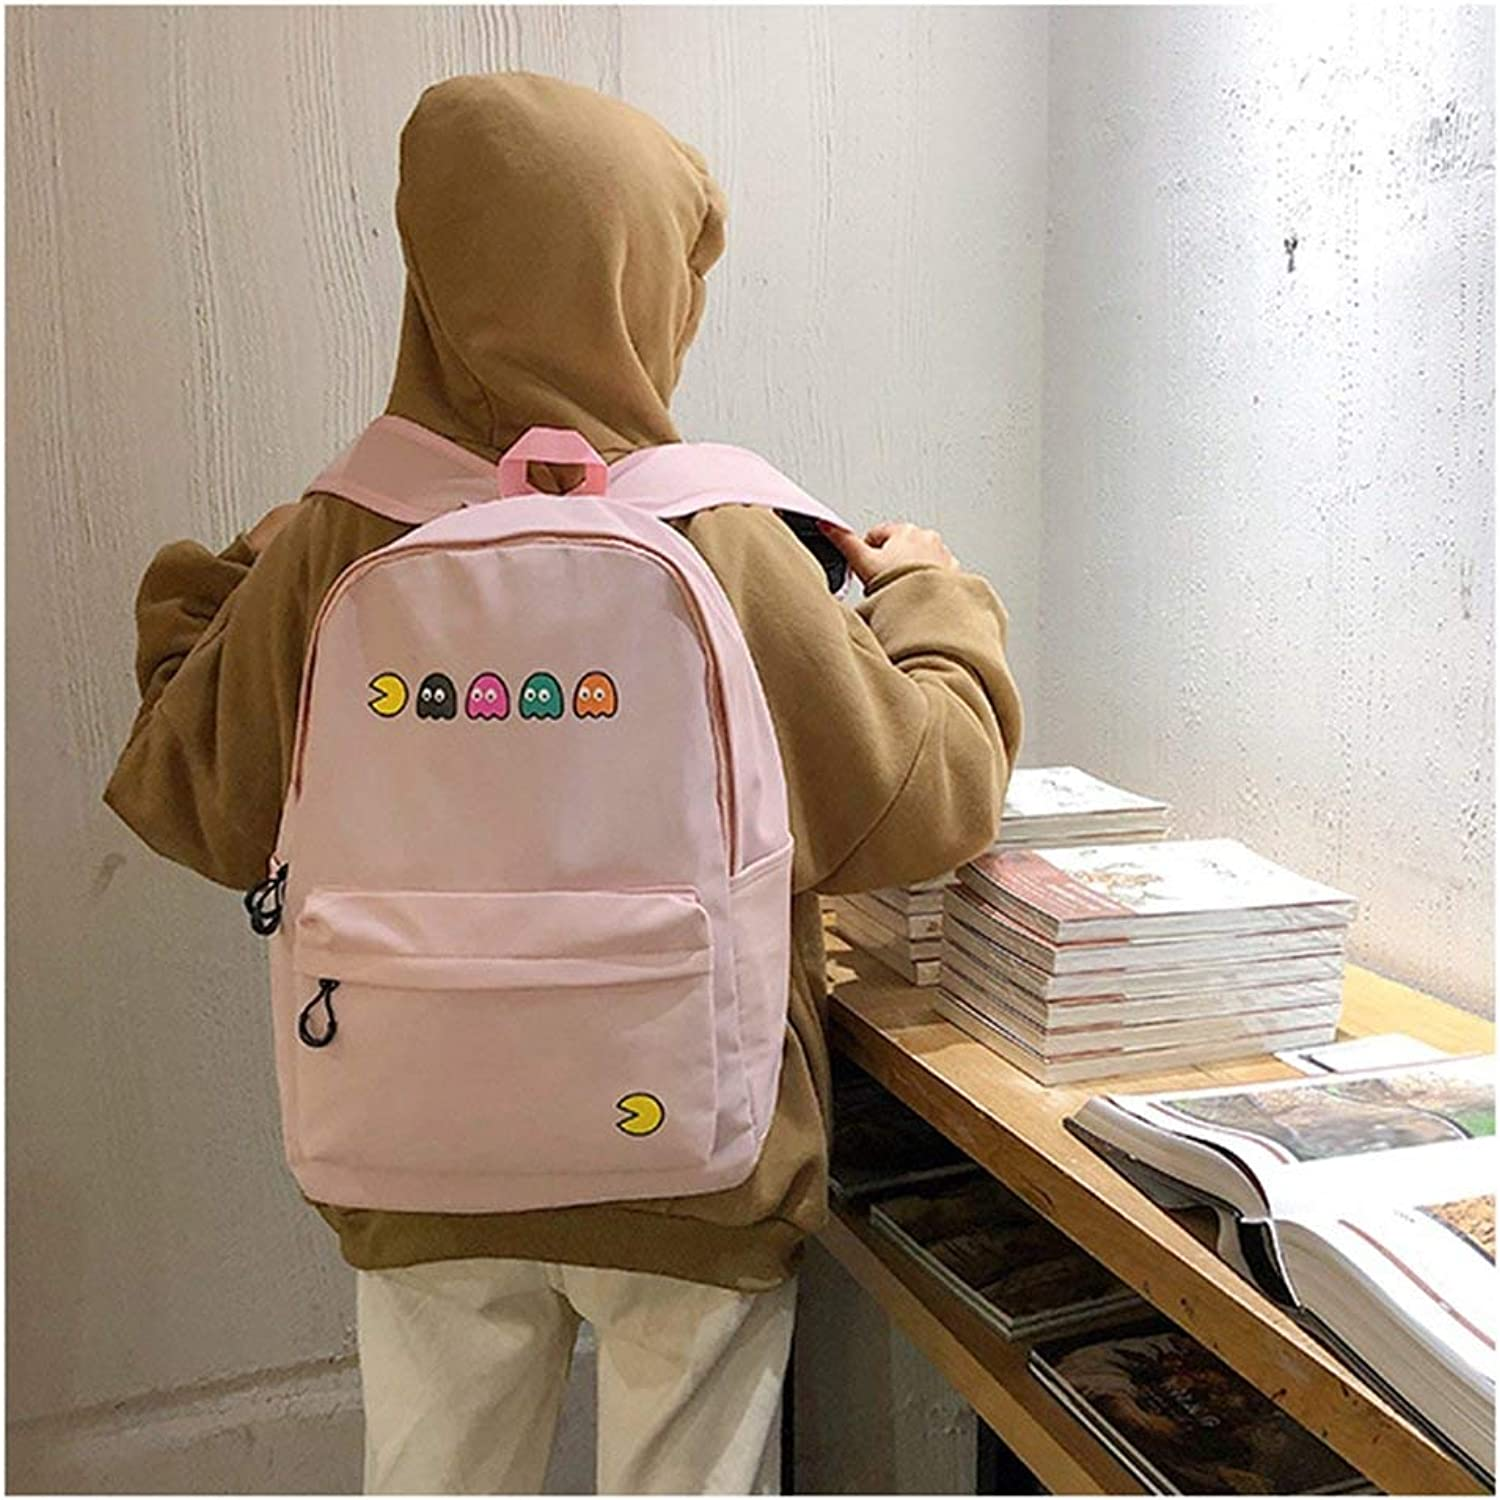 JINQD HOME Personality Backpacks Creative Cute Cartoon Pattern Schoolbag Student Travel Casual Backpack